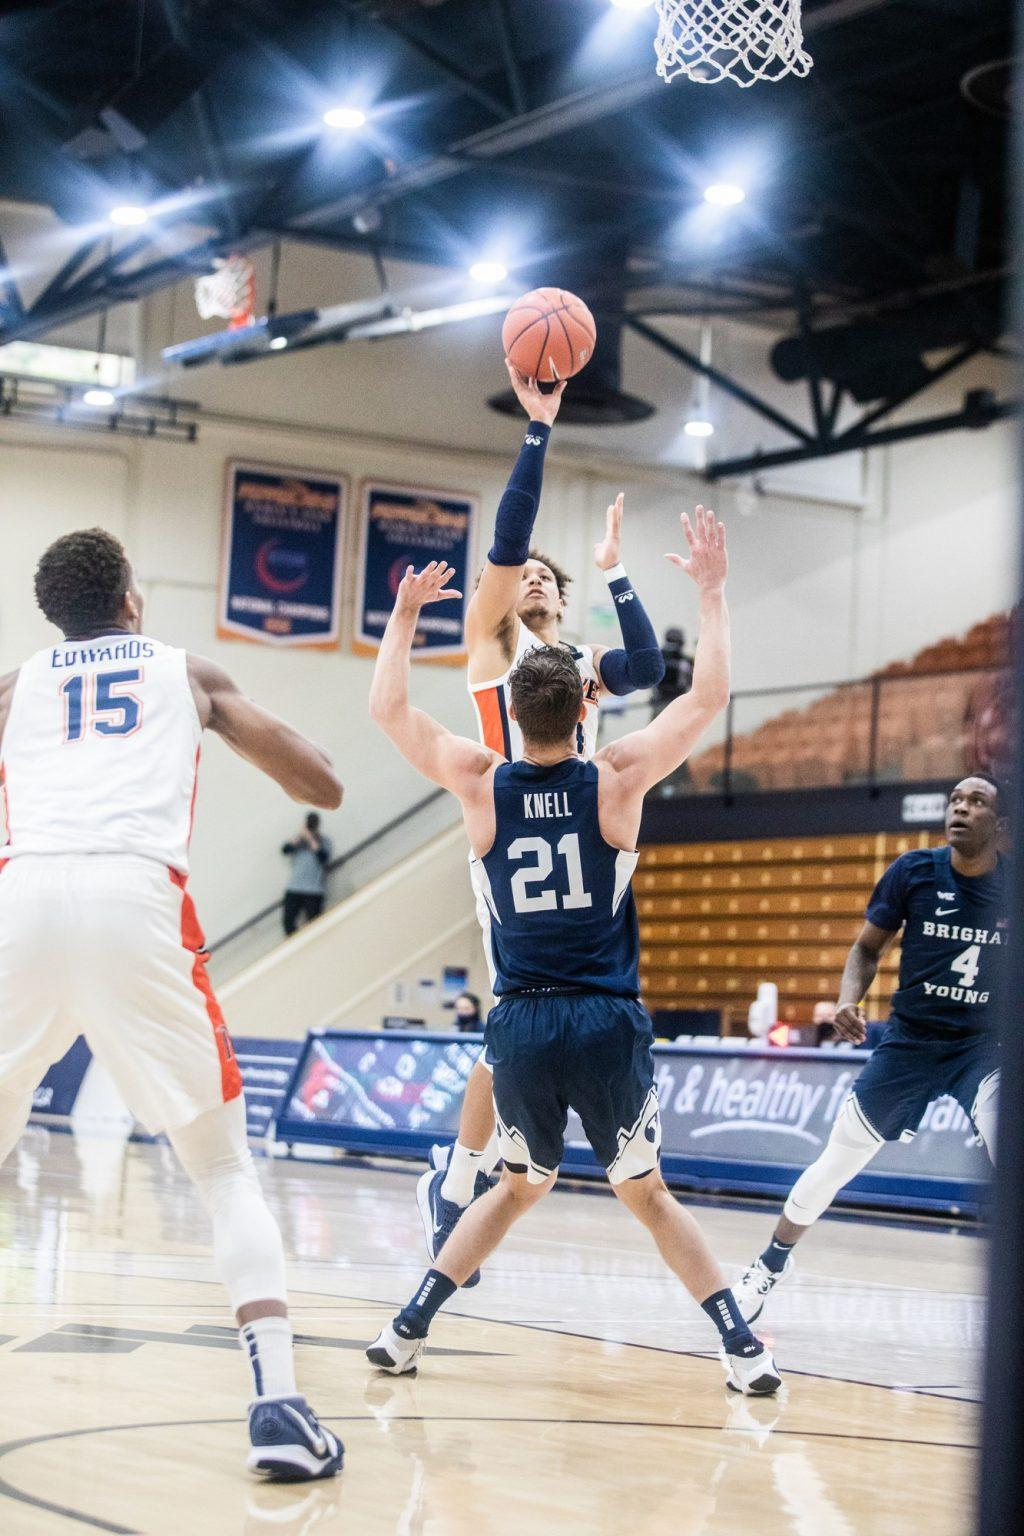 Ross shoots a right-handed floater in the paint as BYU sophomore guard Trevin Knell (No. 21) attempts to take a charge. Ross finished 4-17 from the field but shot 11-13 from the free-throw line.